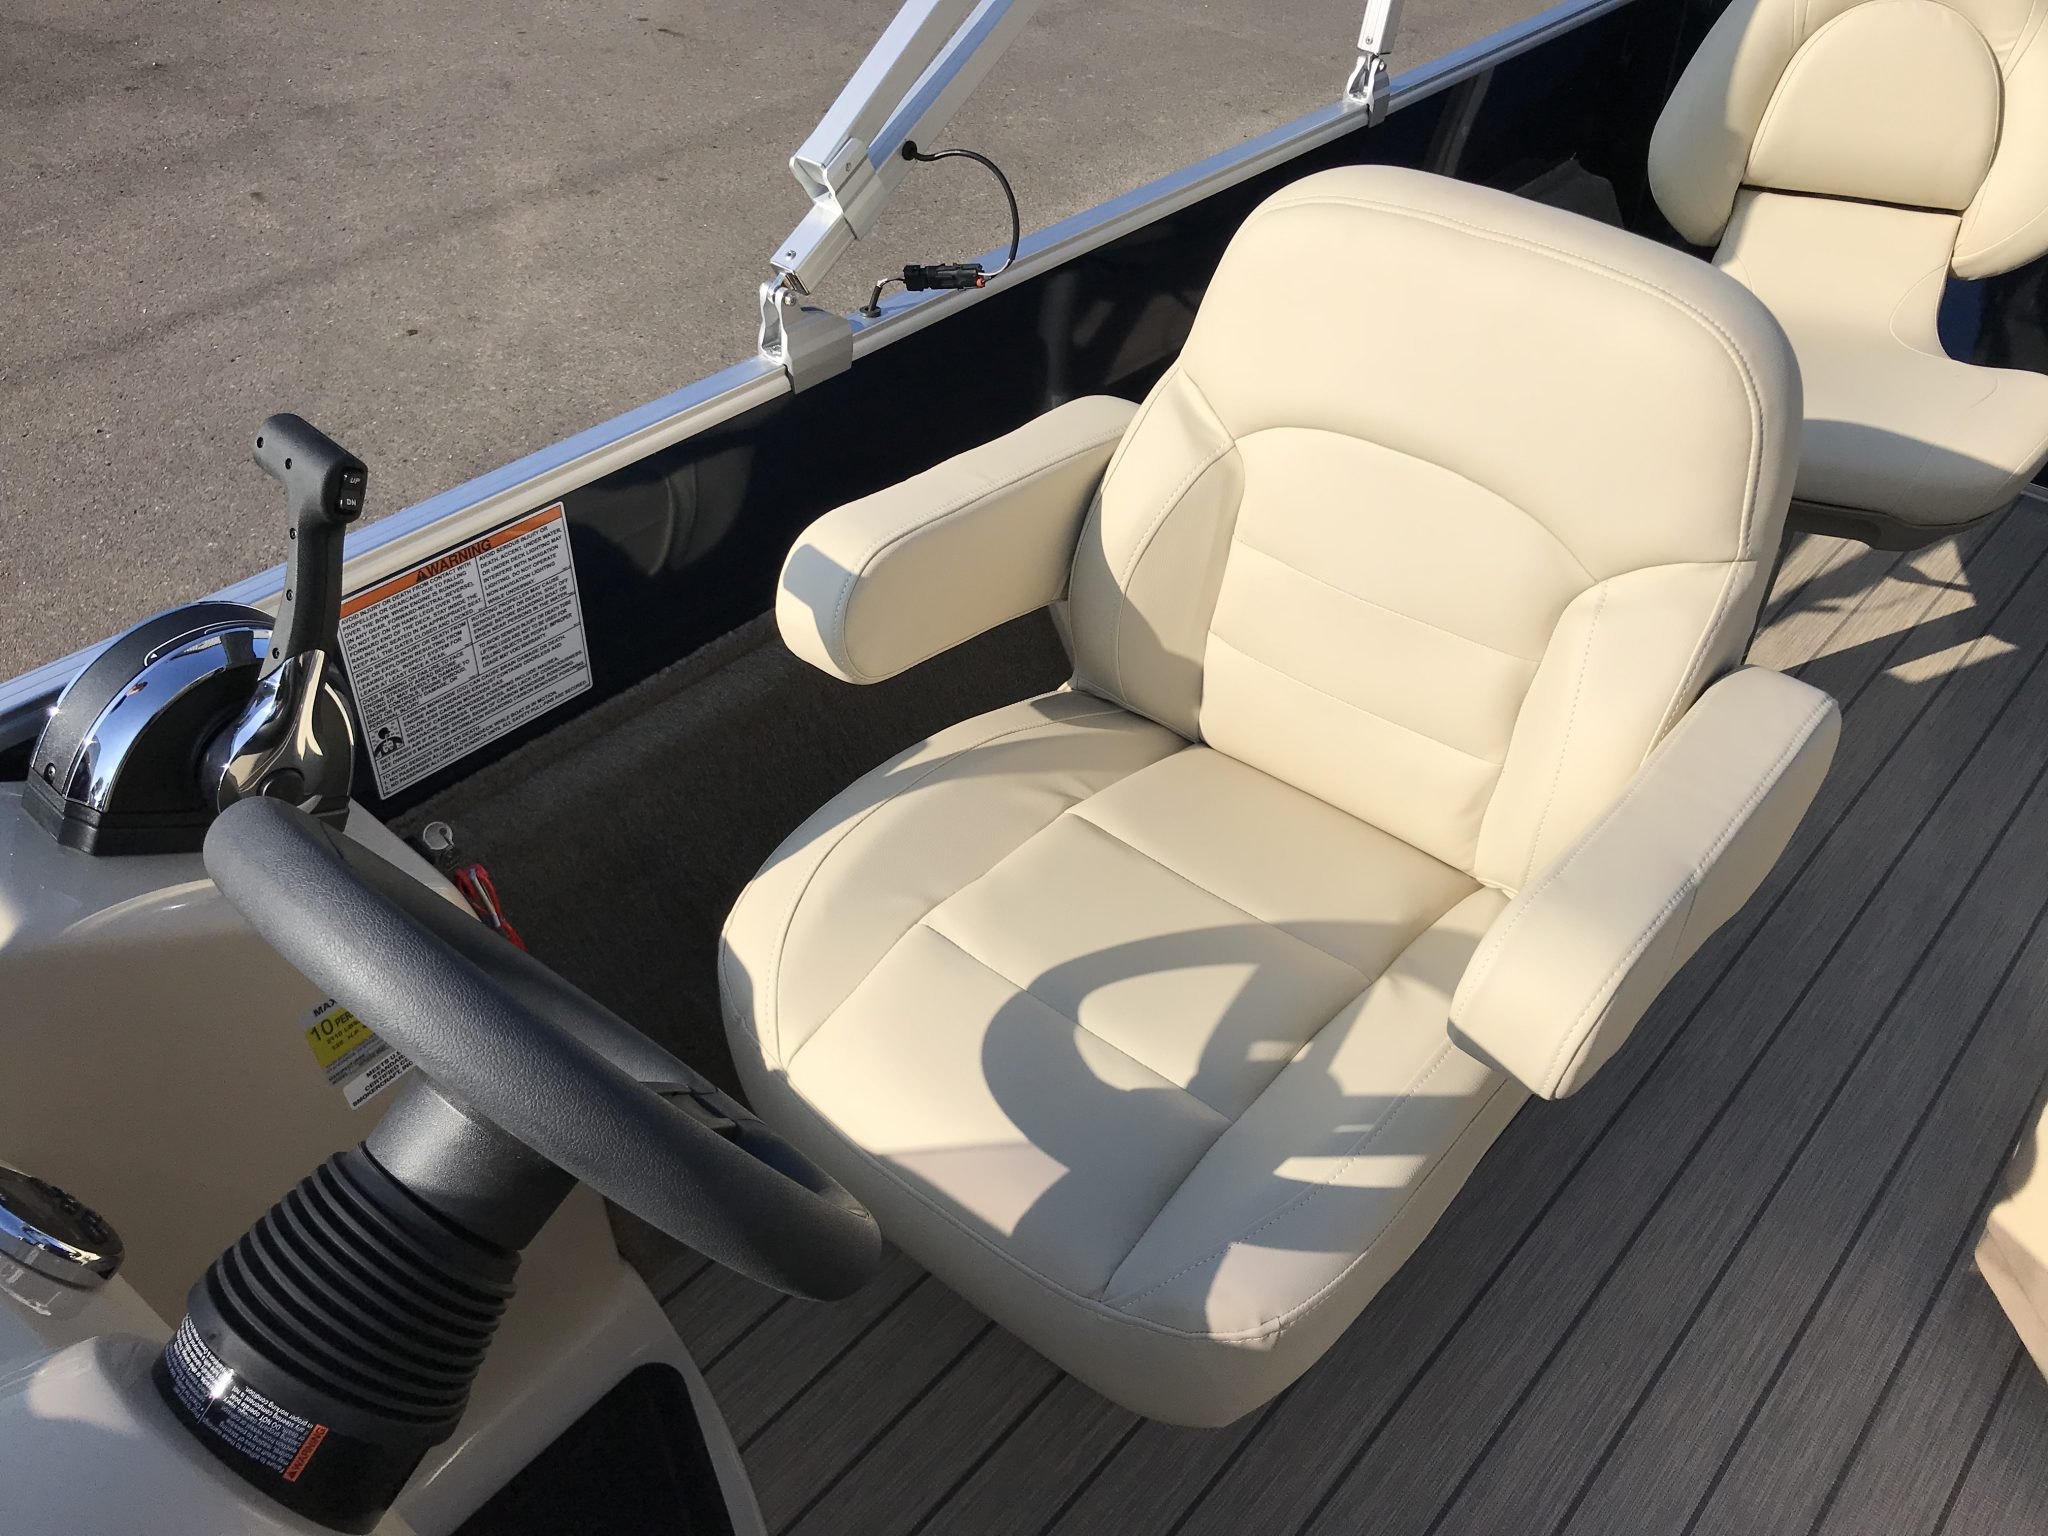 Sylvan 8520 Cruise-n-Fish Captains Helm Chair